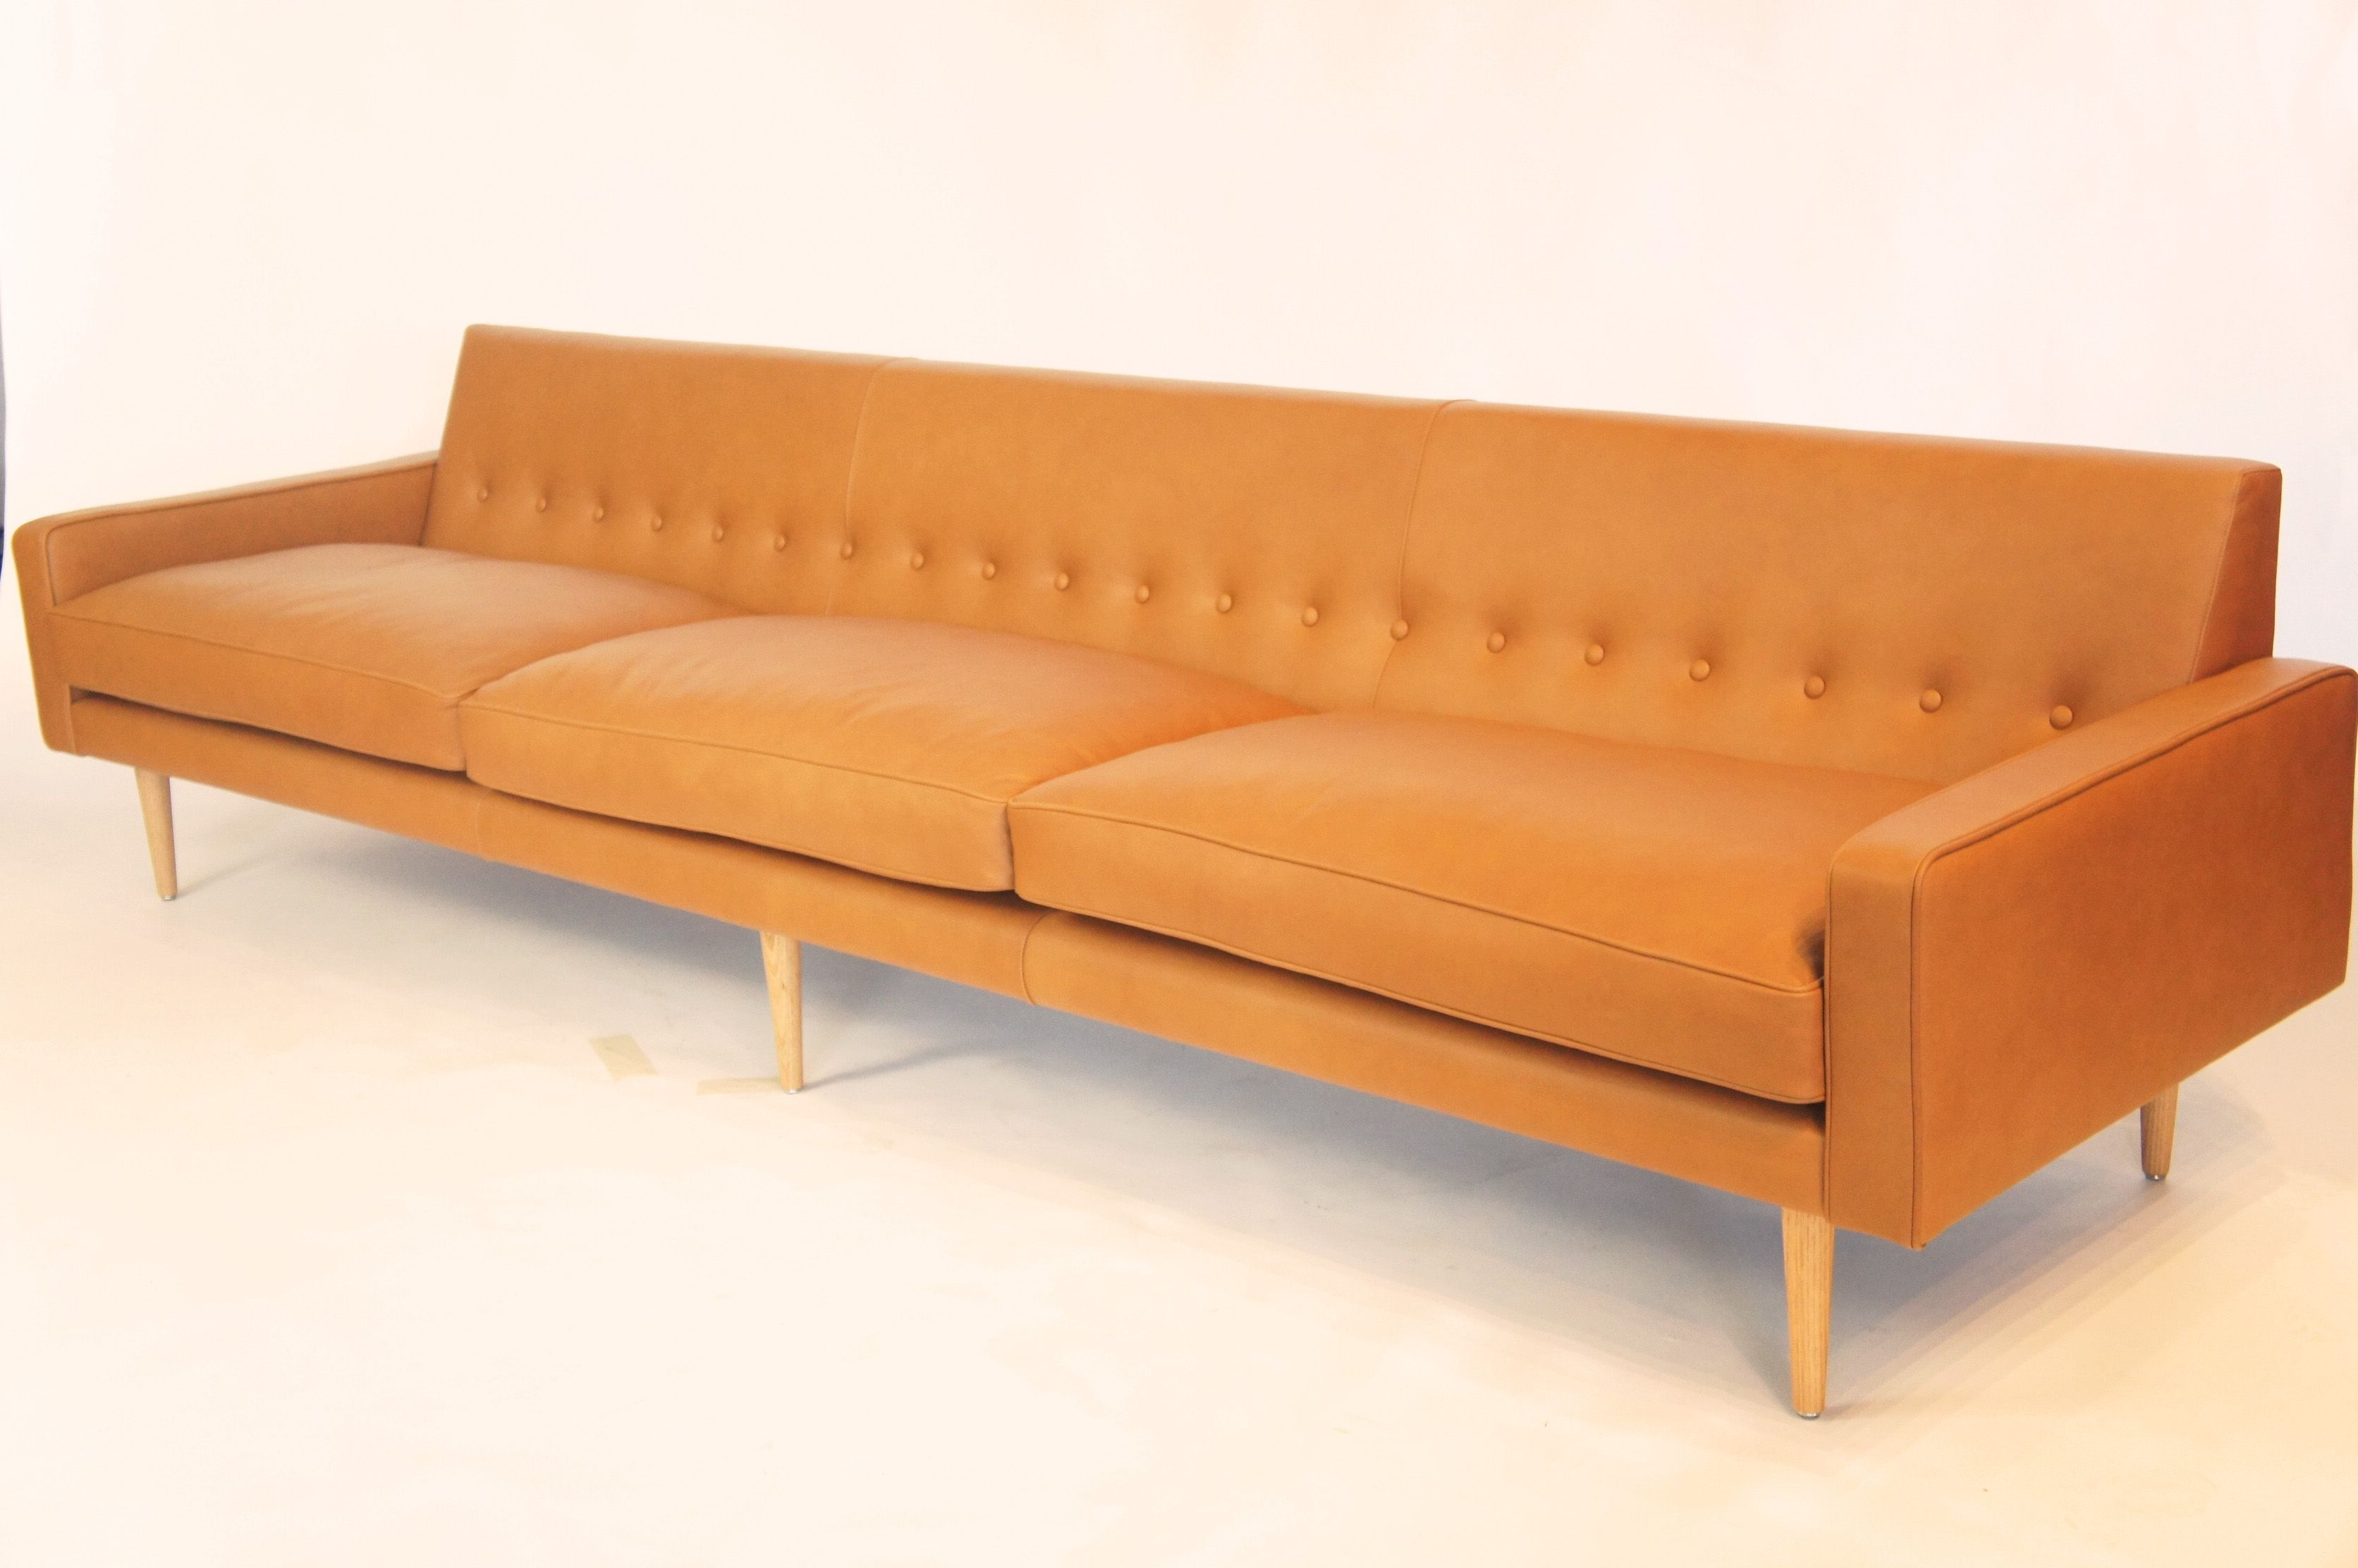 2 8m Slimline Sofa In Vera Pelle Ultimo Tan